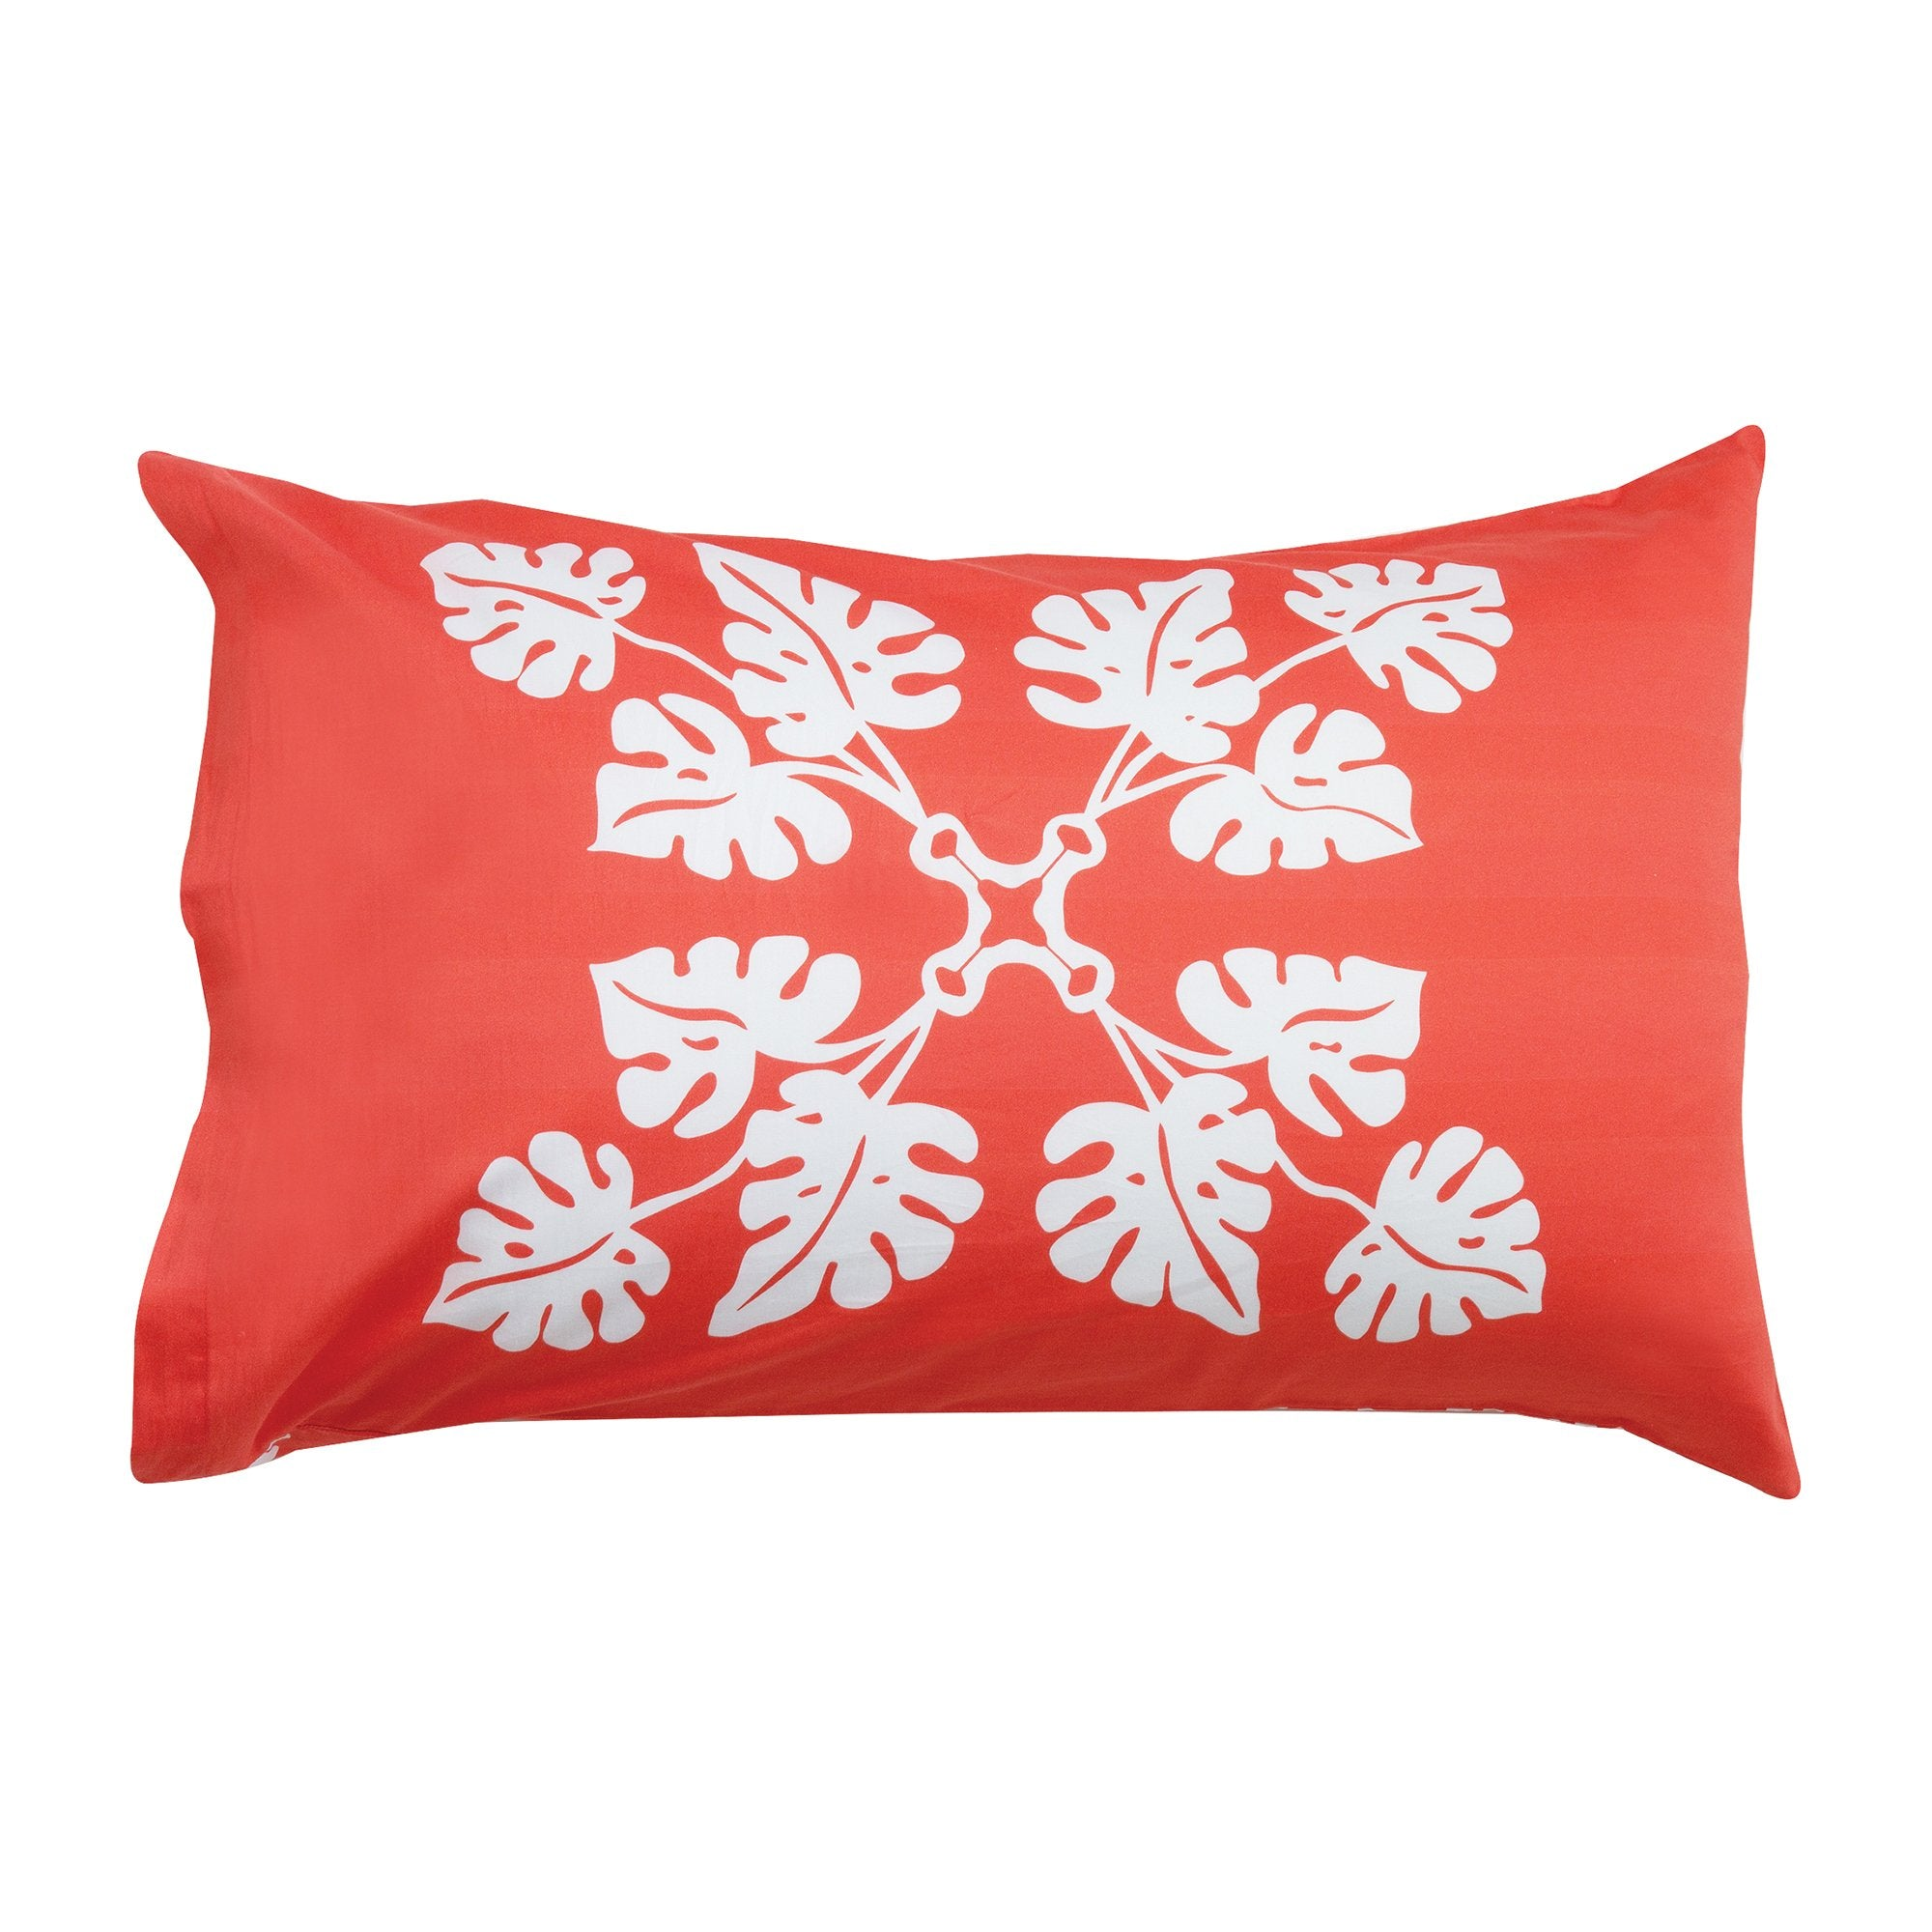 Kikau's Tropical Raro Red kids pillowcase on white background